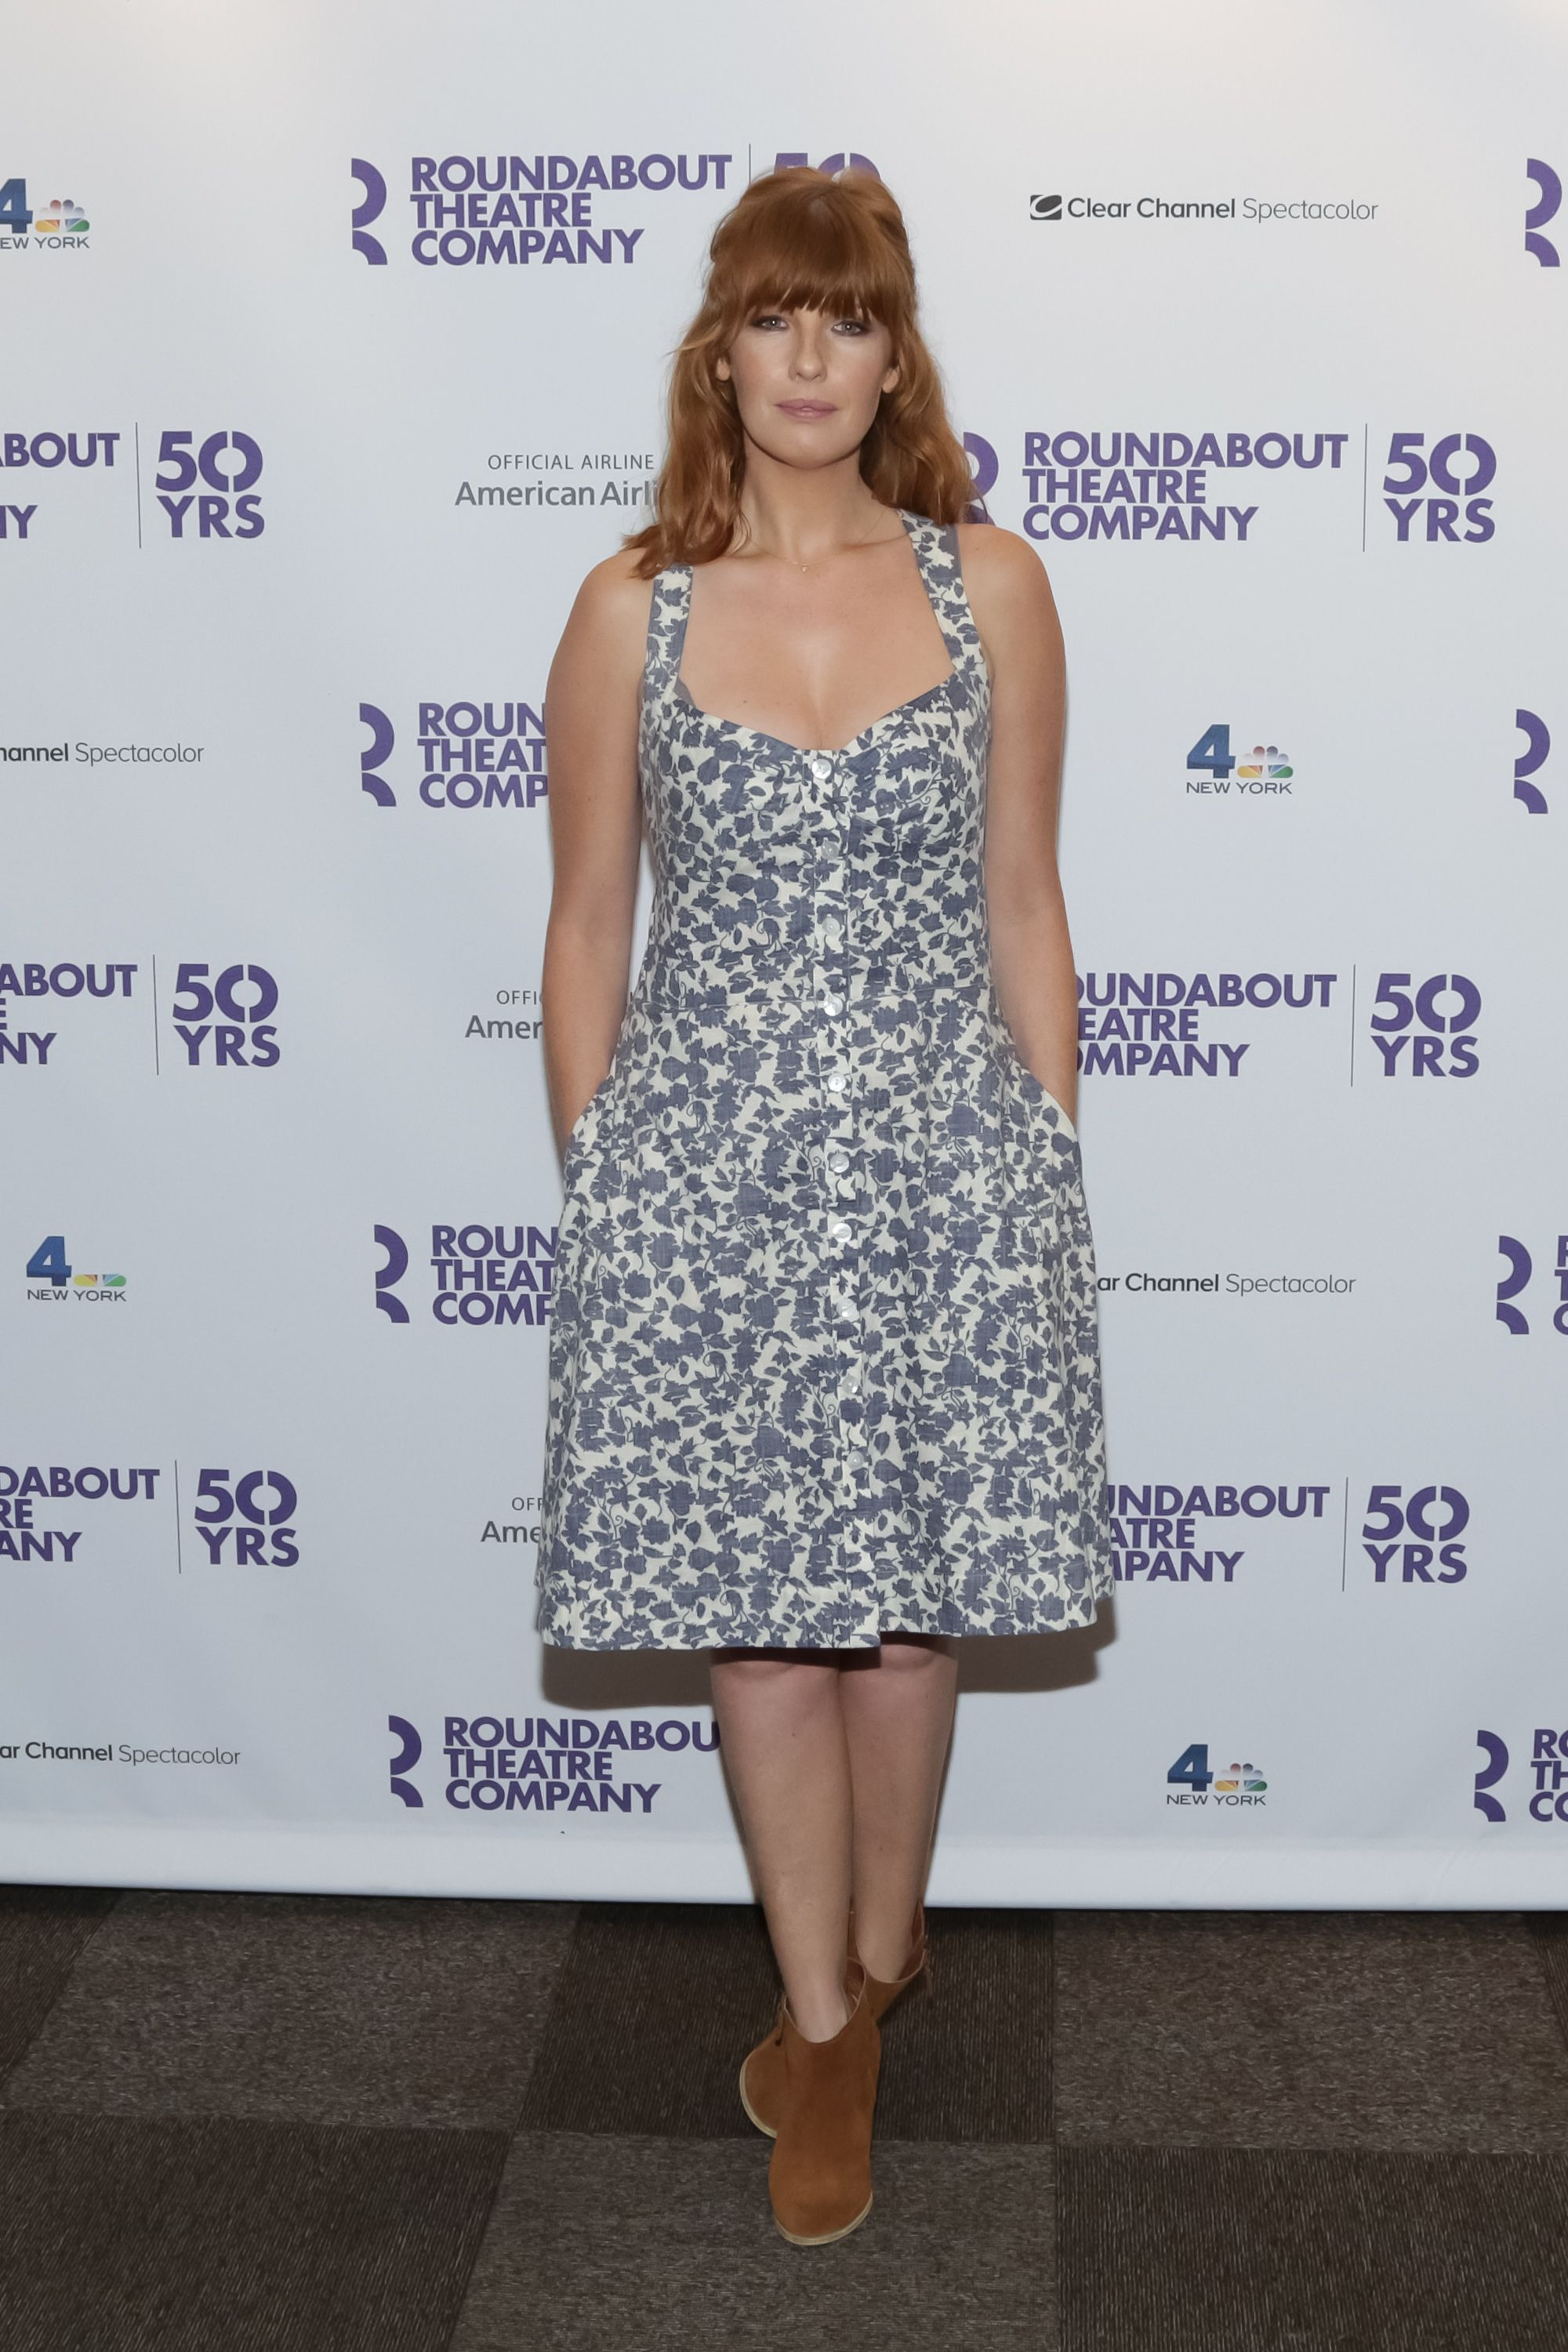 Kelly Reilly arrives for Roundabout's 50th anniversary season party held at the Roundabout Theatre Company on September 10, 2015 in New York City. | Photo:Getty Images